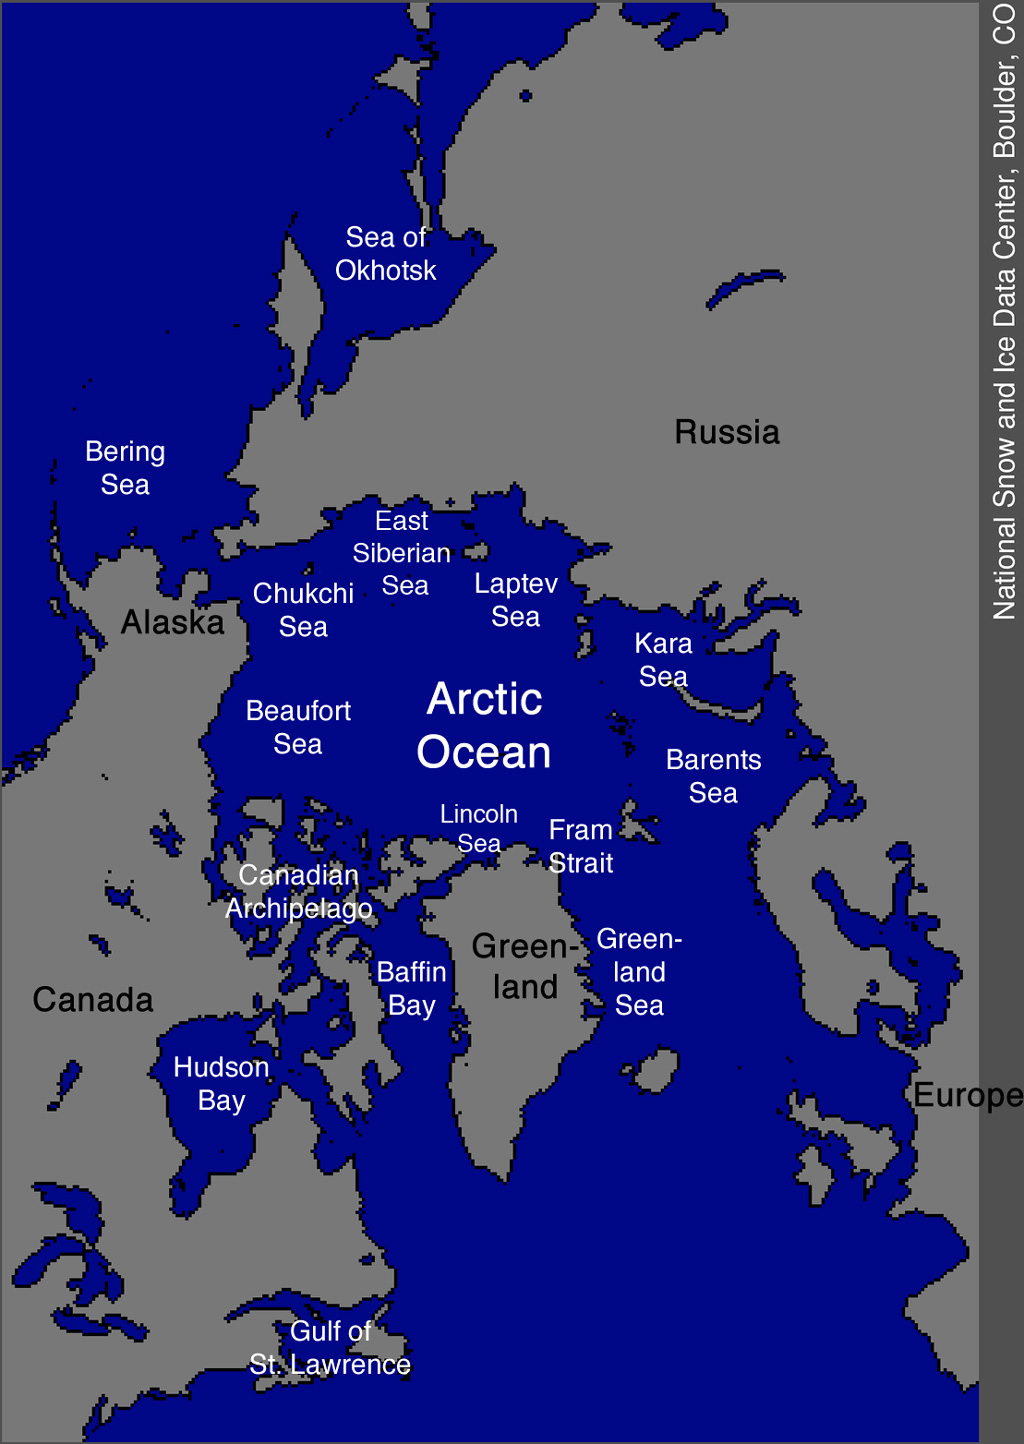 A map of the Arctic Ocean.